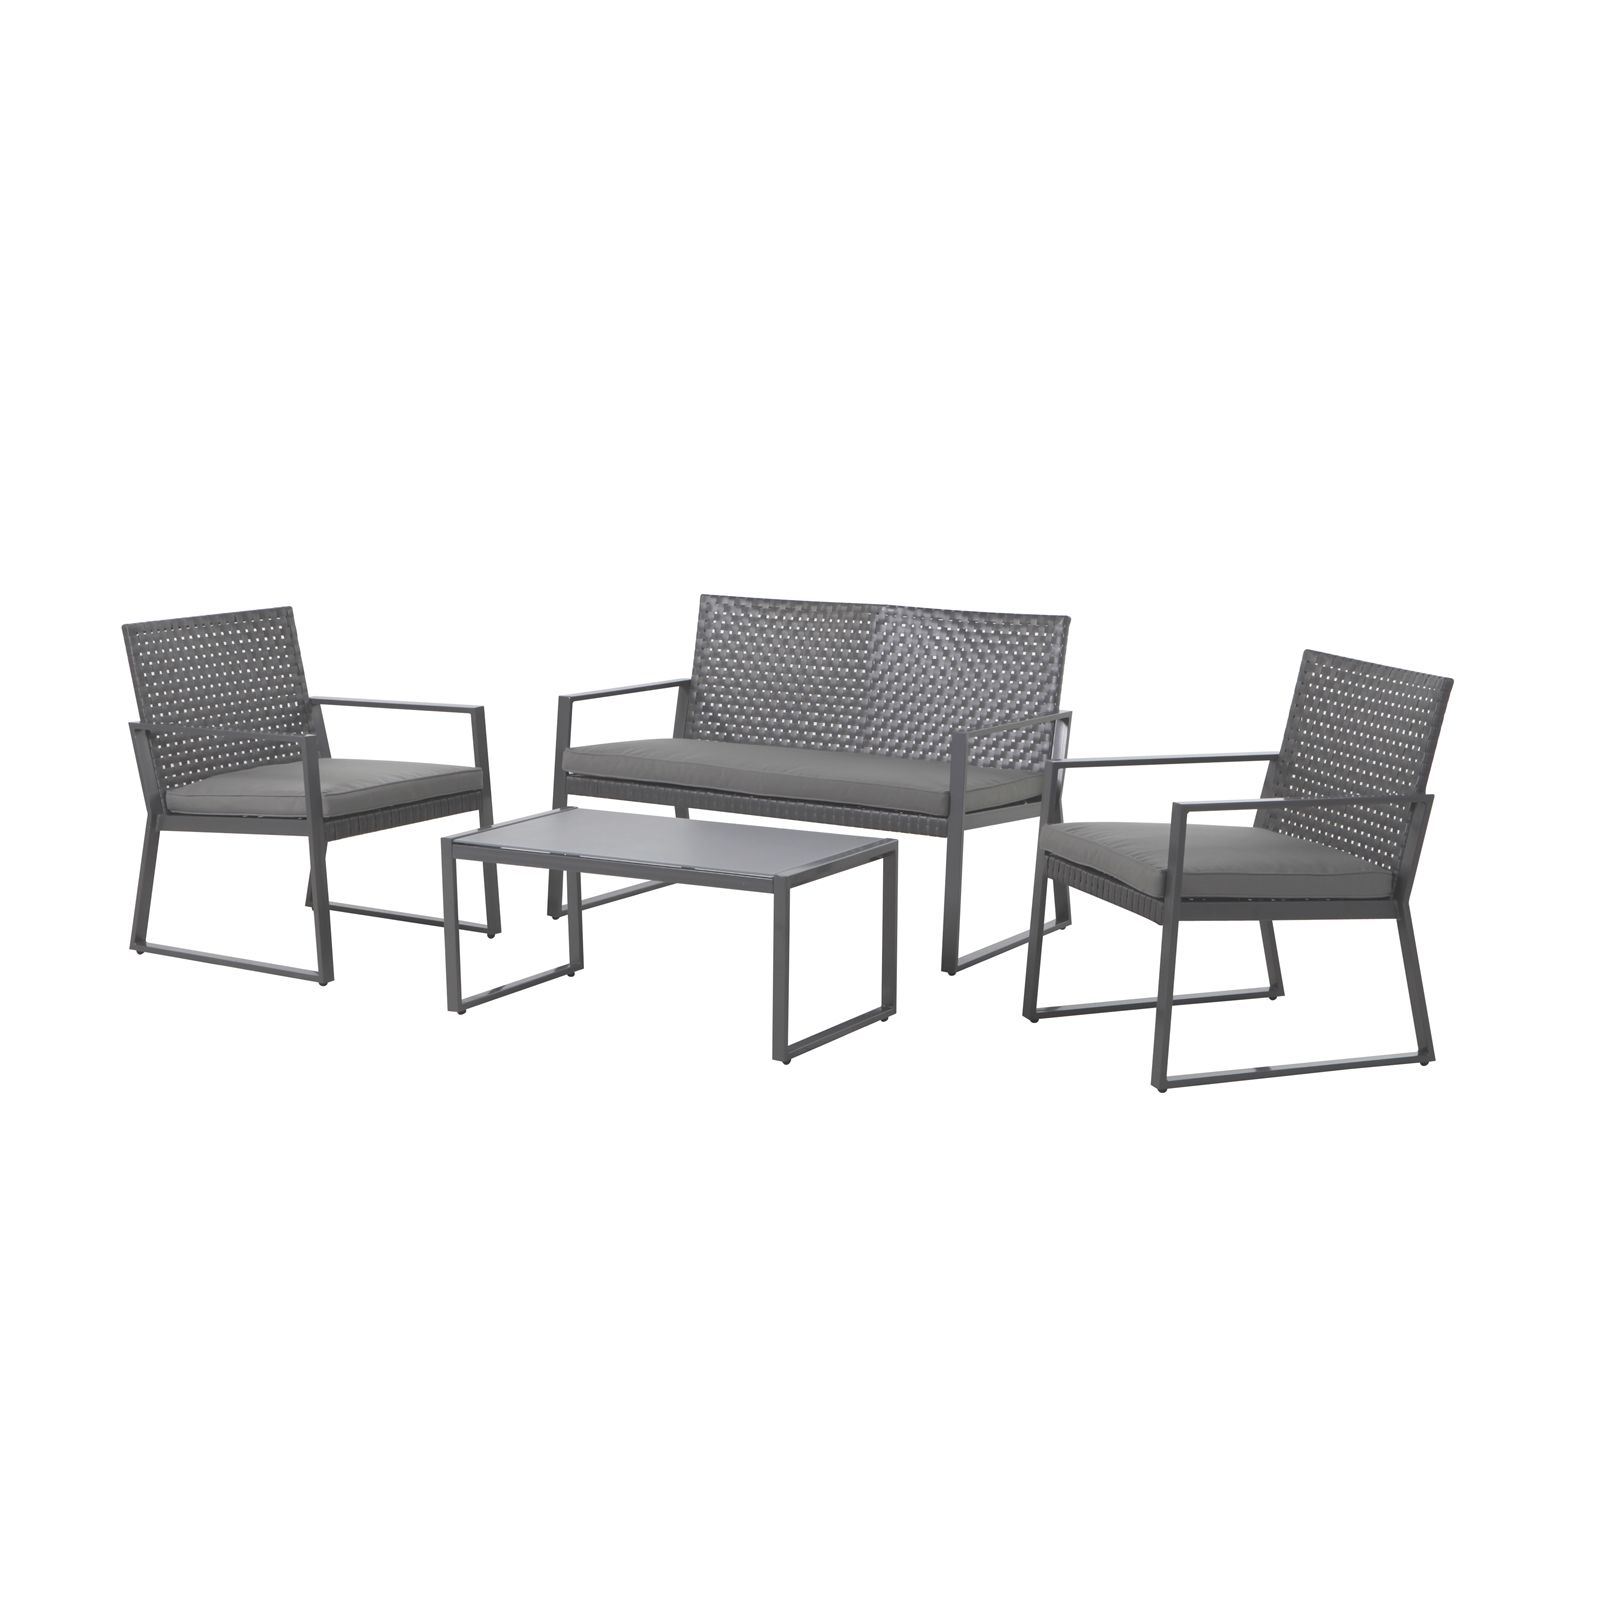 Outdoor Lounges Bunnings Find Marquee 4 Piece Silverleaves Lounge Setting At